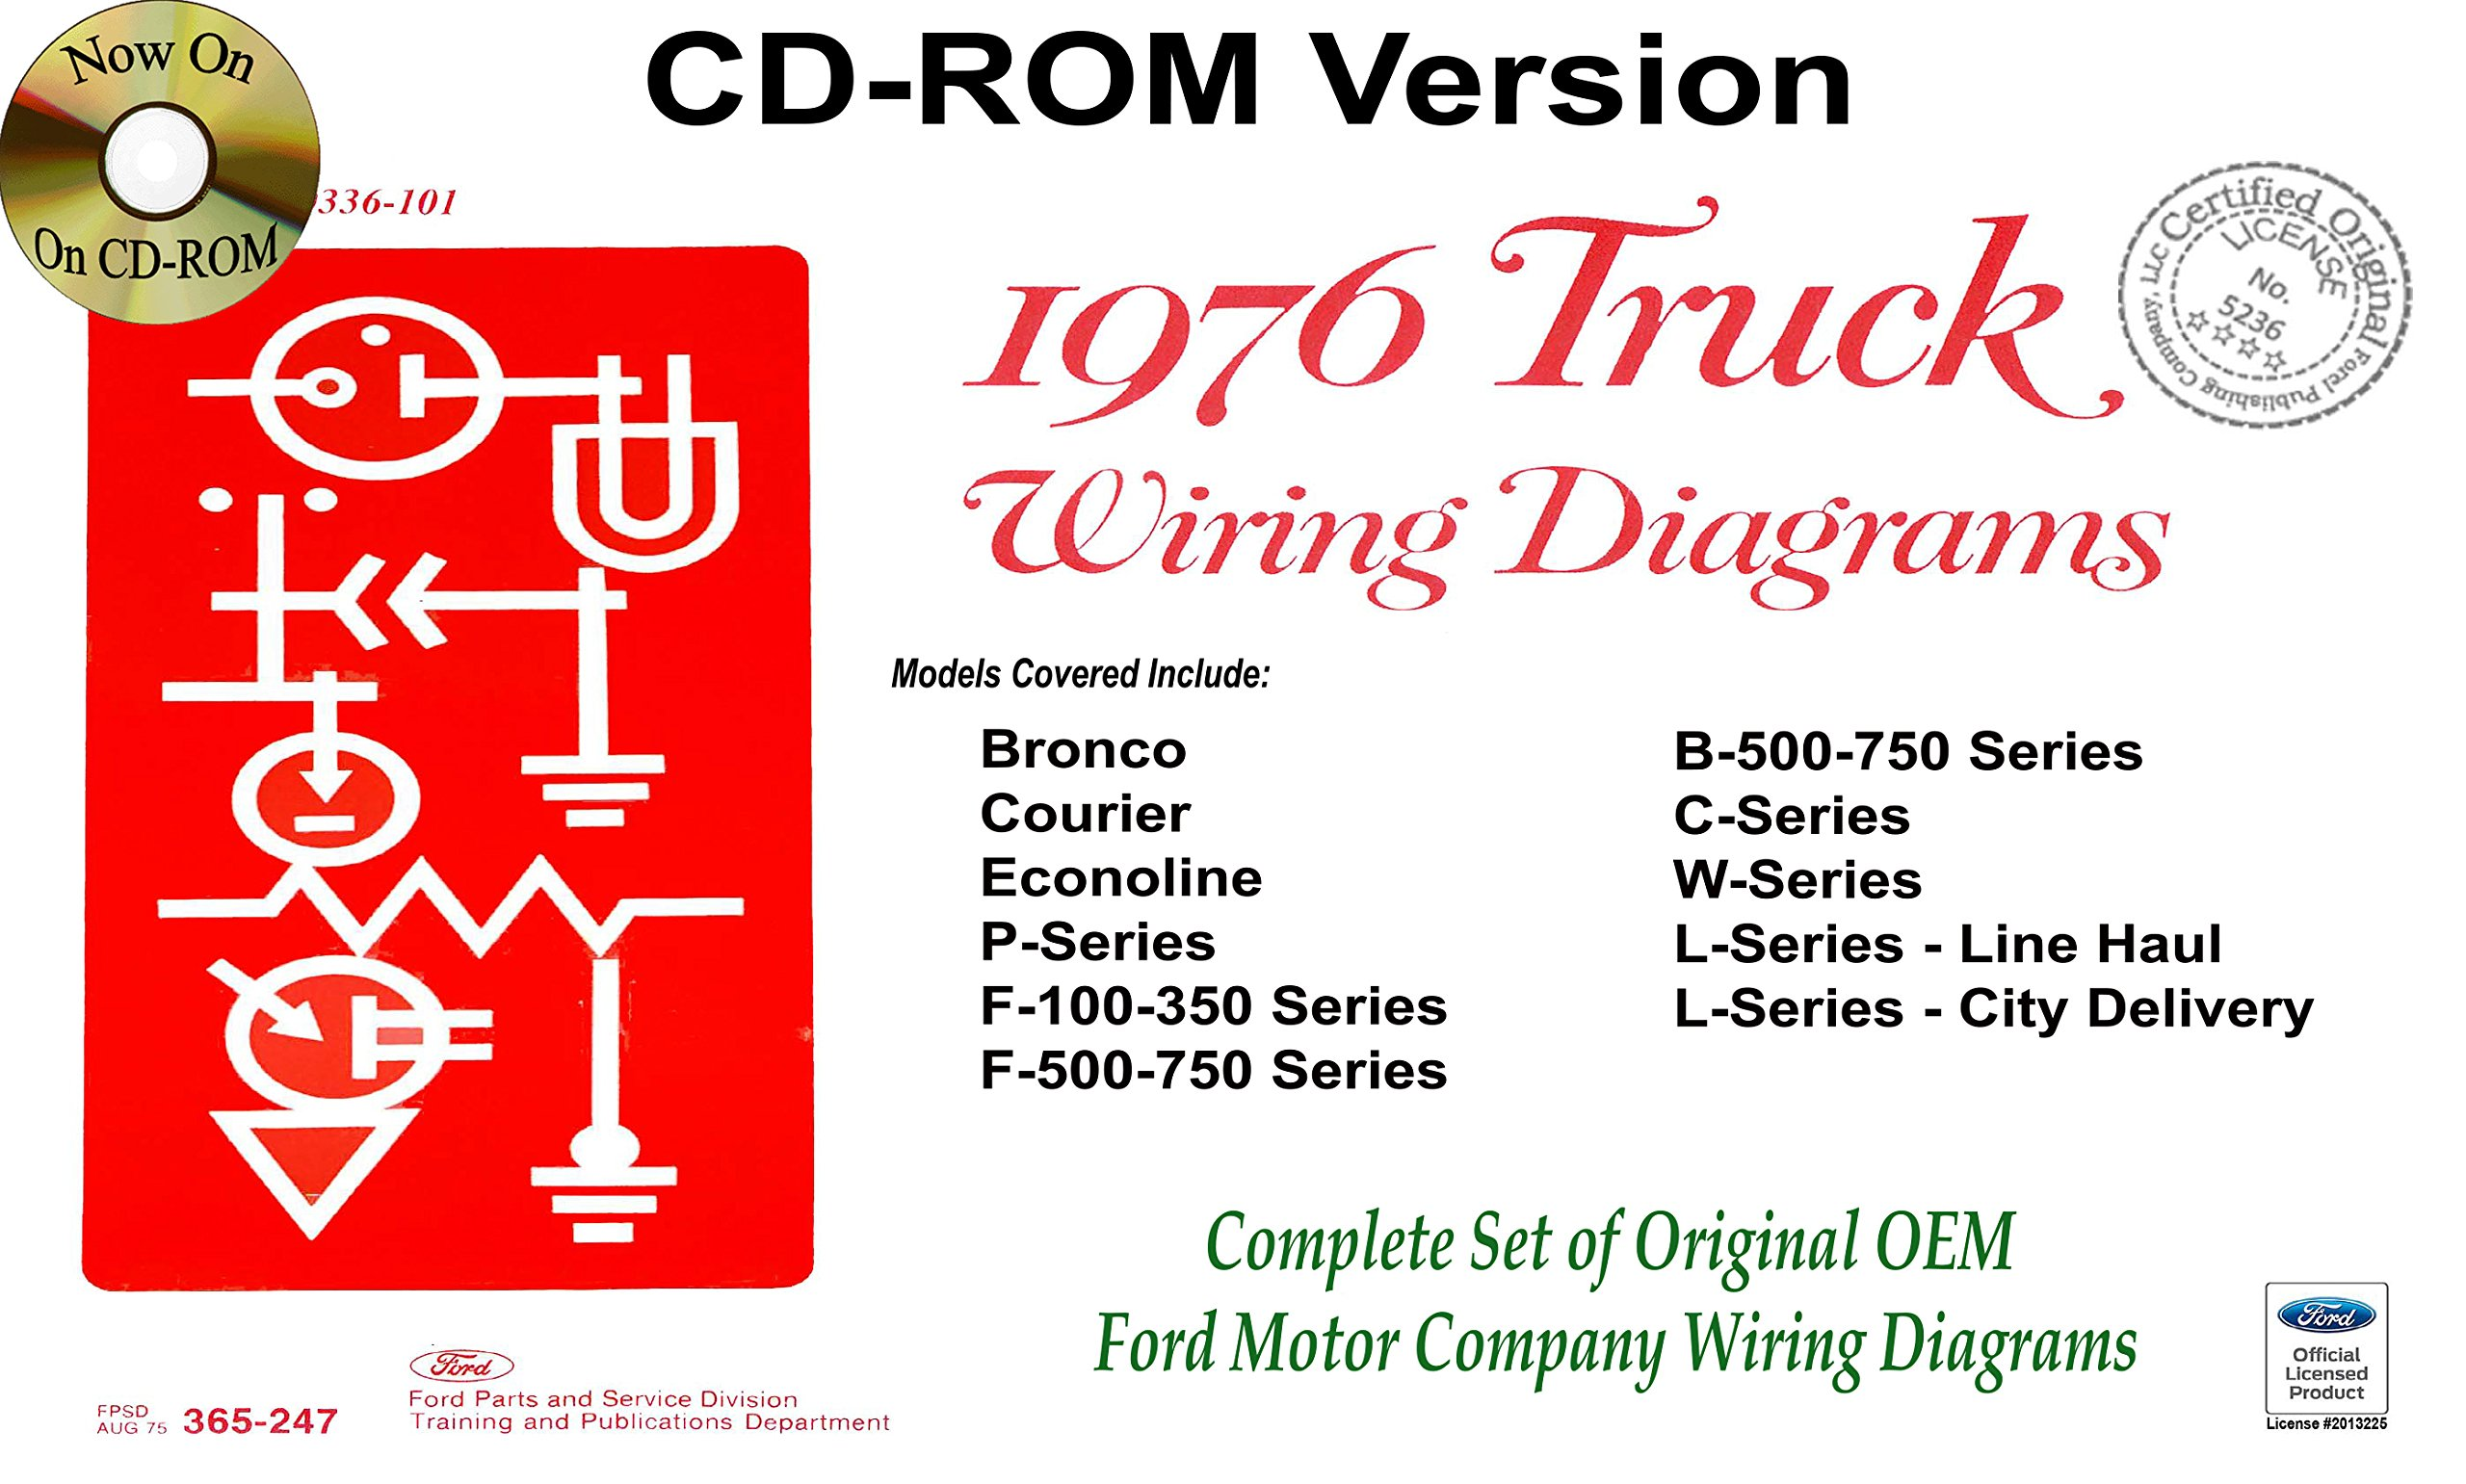 Buy 1976 Ford Truck Wiring Diagrams Book Online At Low Courier Prices In India Reviews Ratings